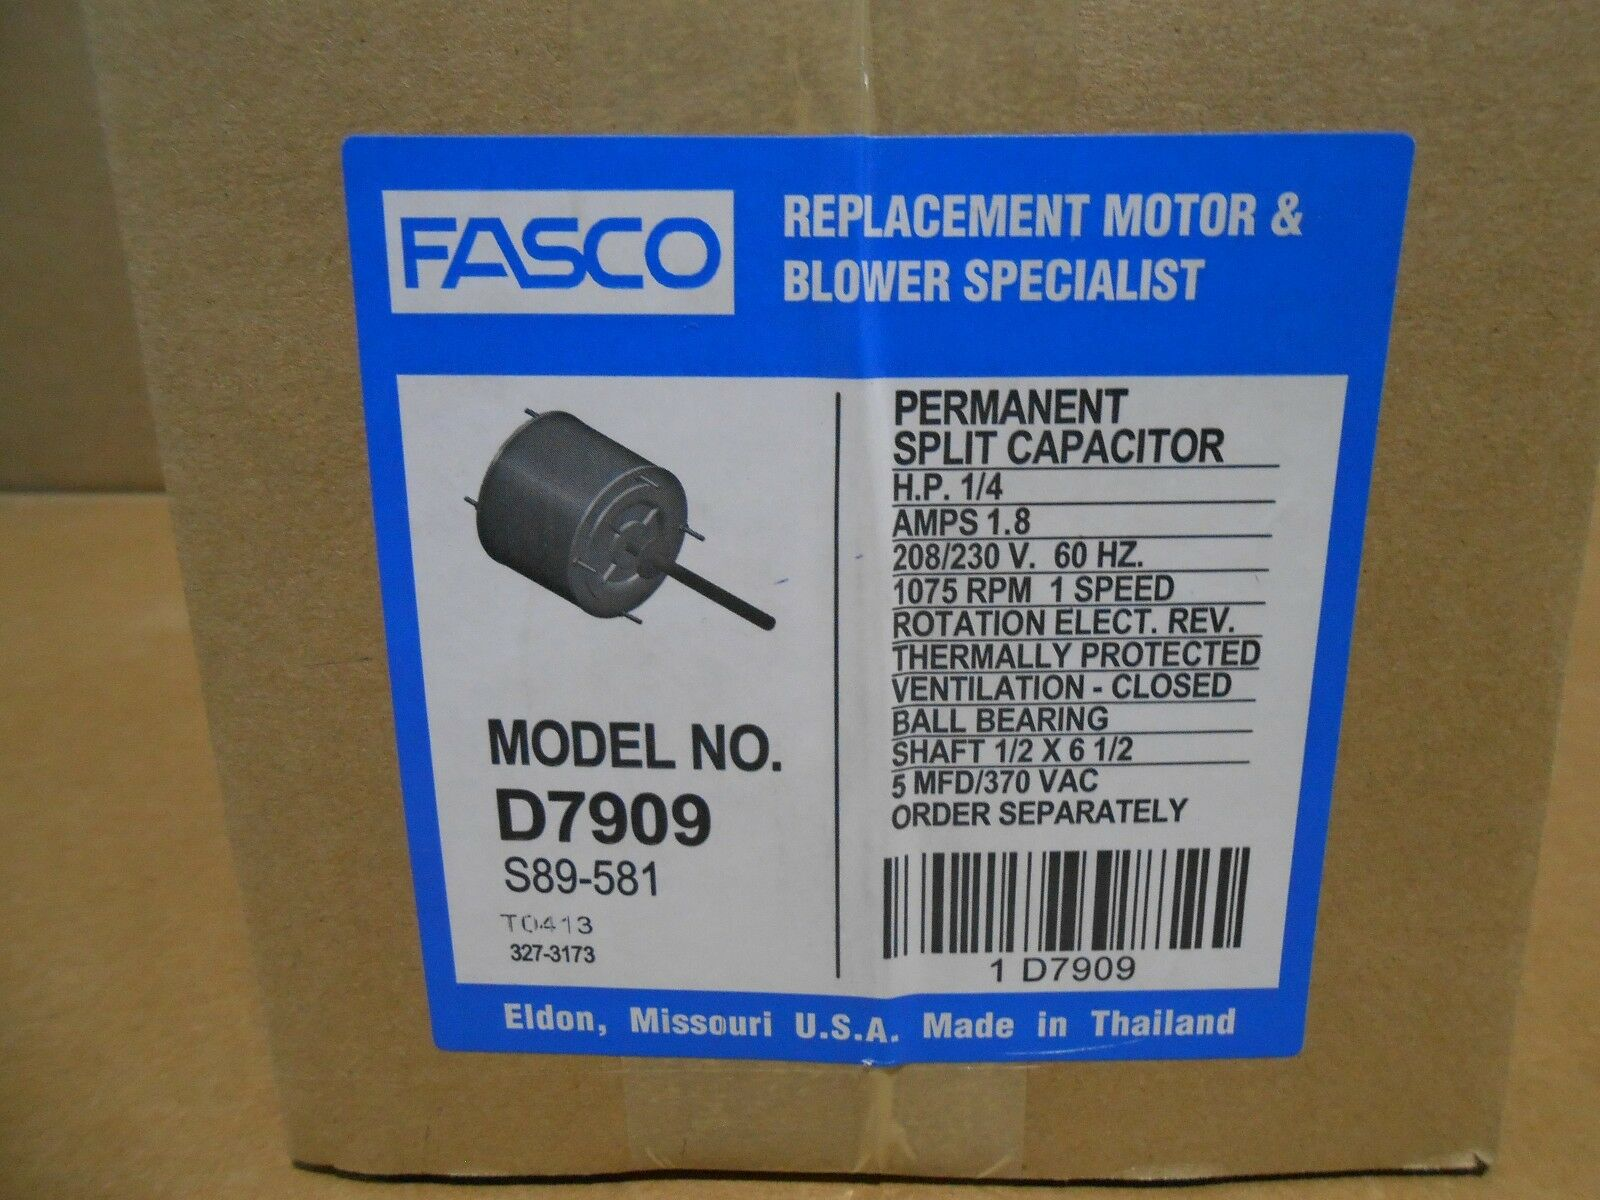 hight resolution of fasco d7909 ac air conditioner condenser fan motor 1 4 hp 1075 rpm 230 volts for sale online ebay